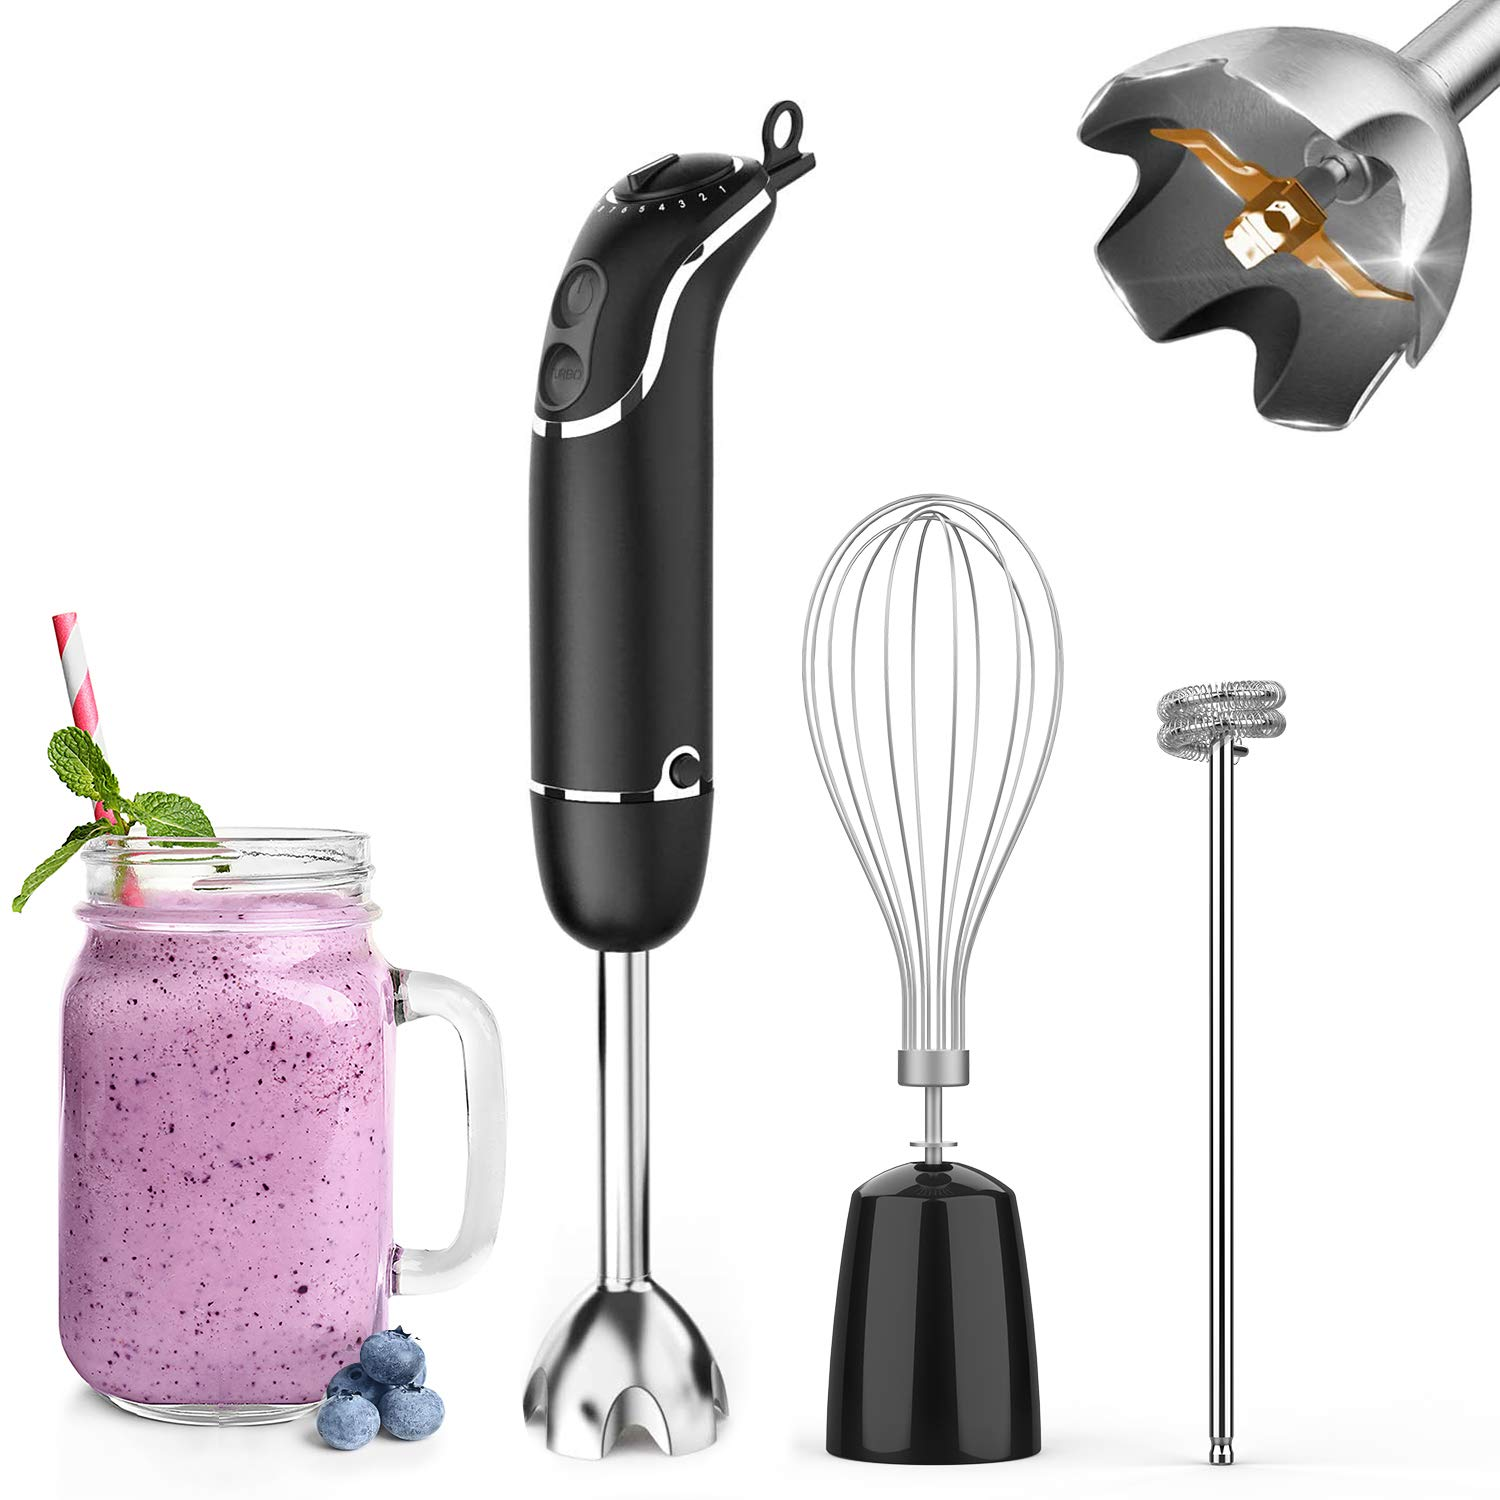 KOIOS Hand Immersion Blender with Whisk